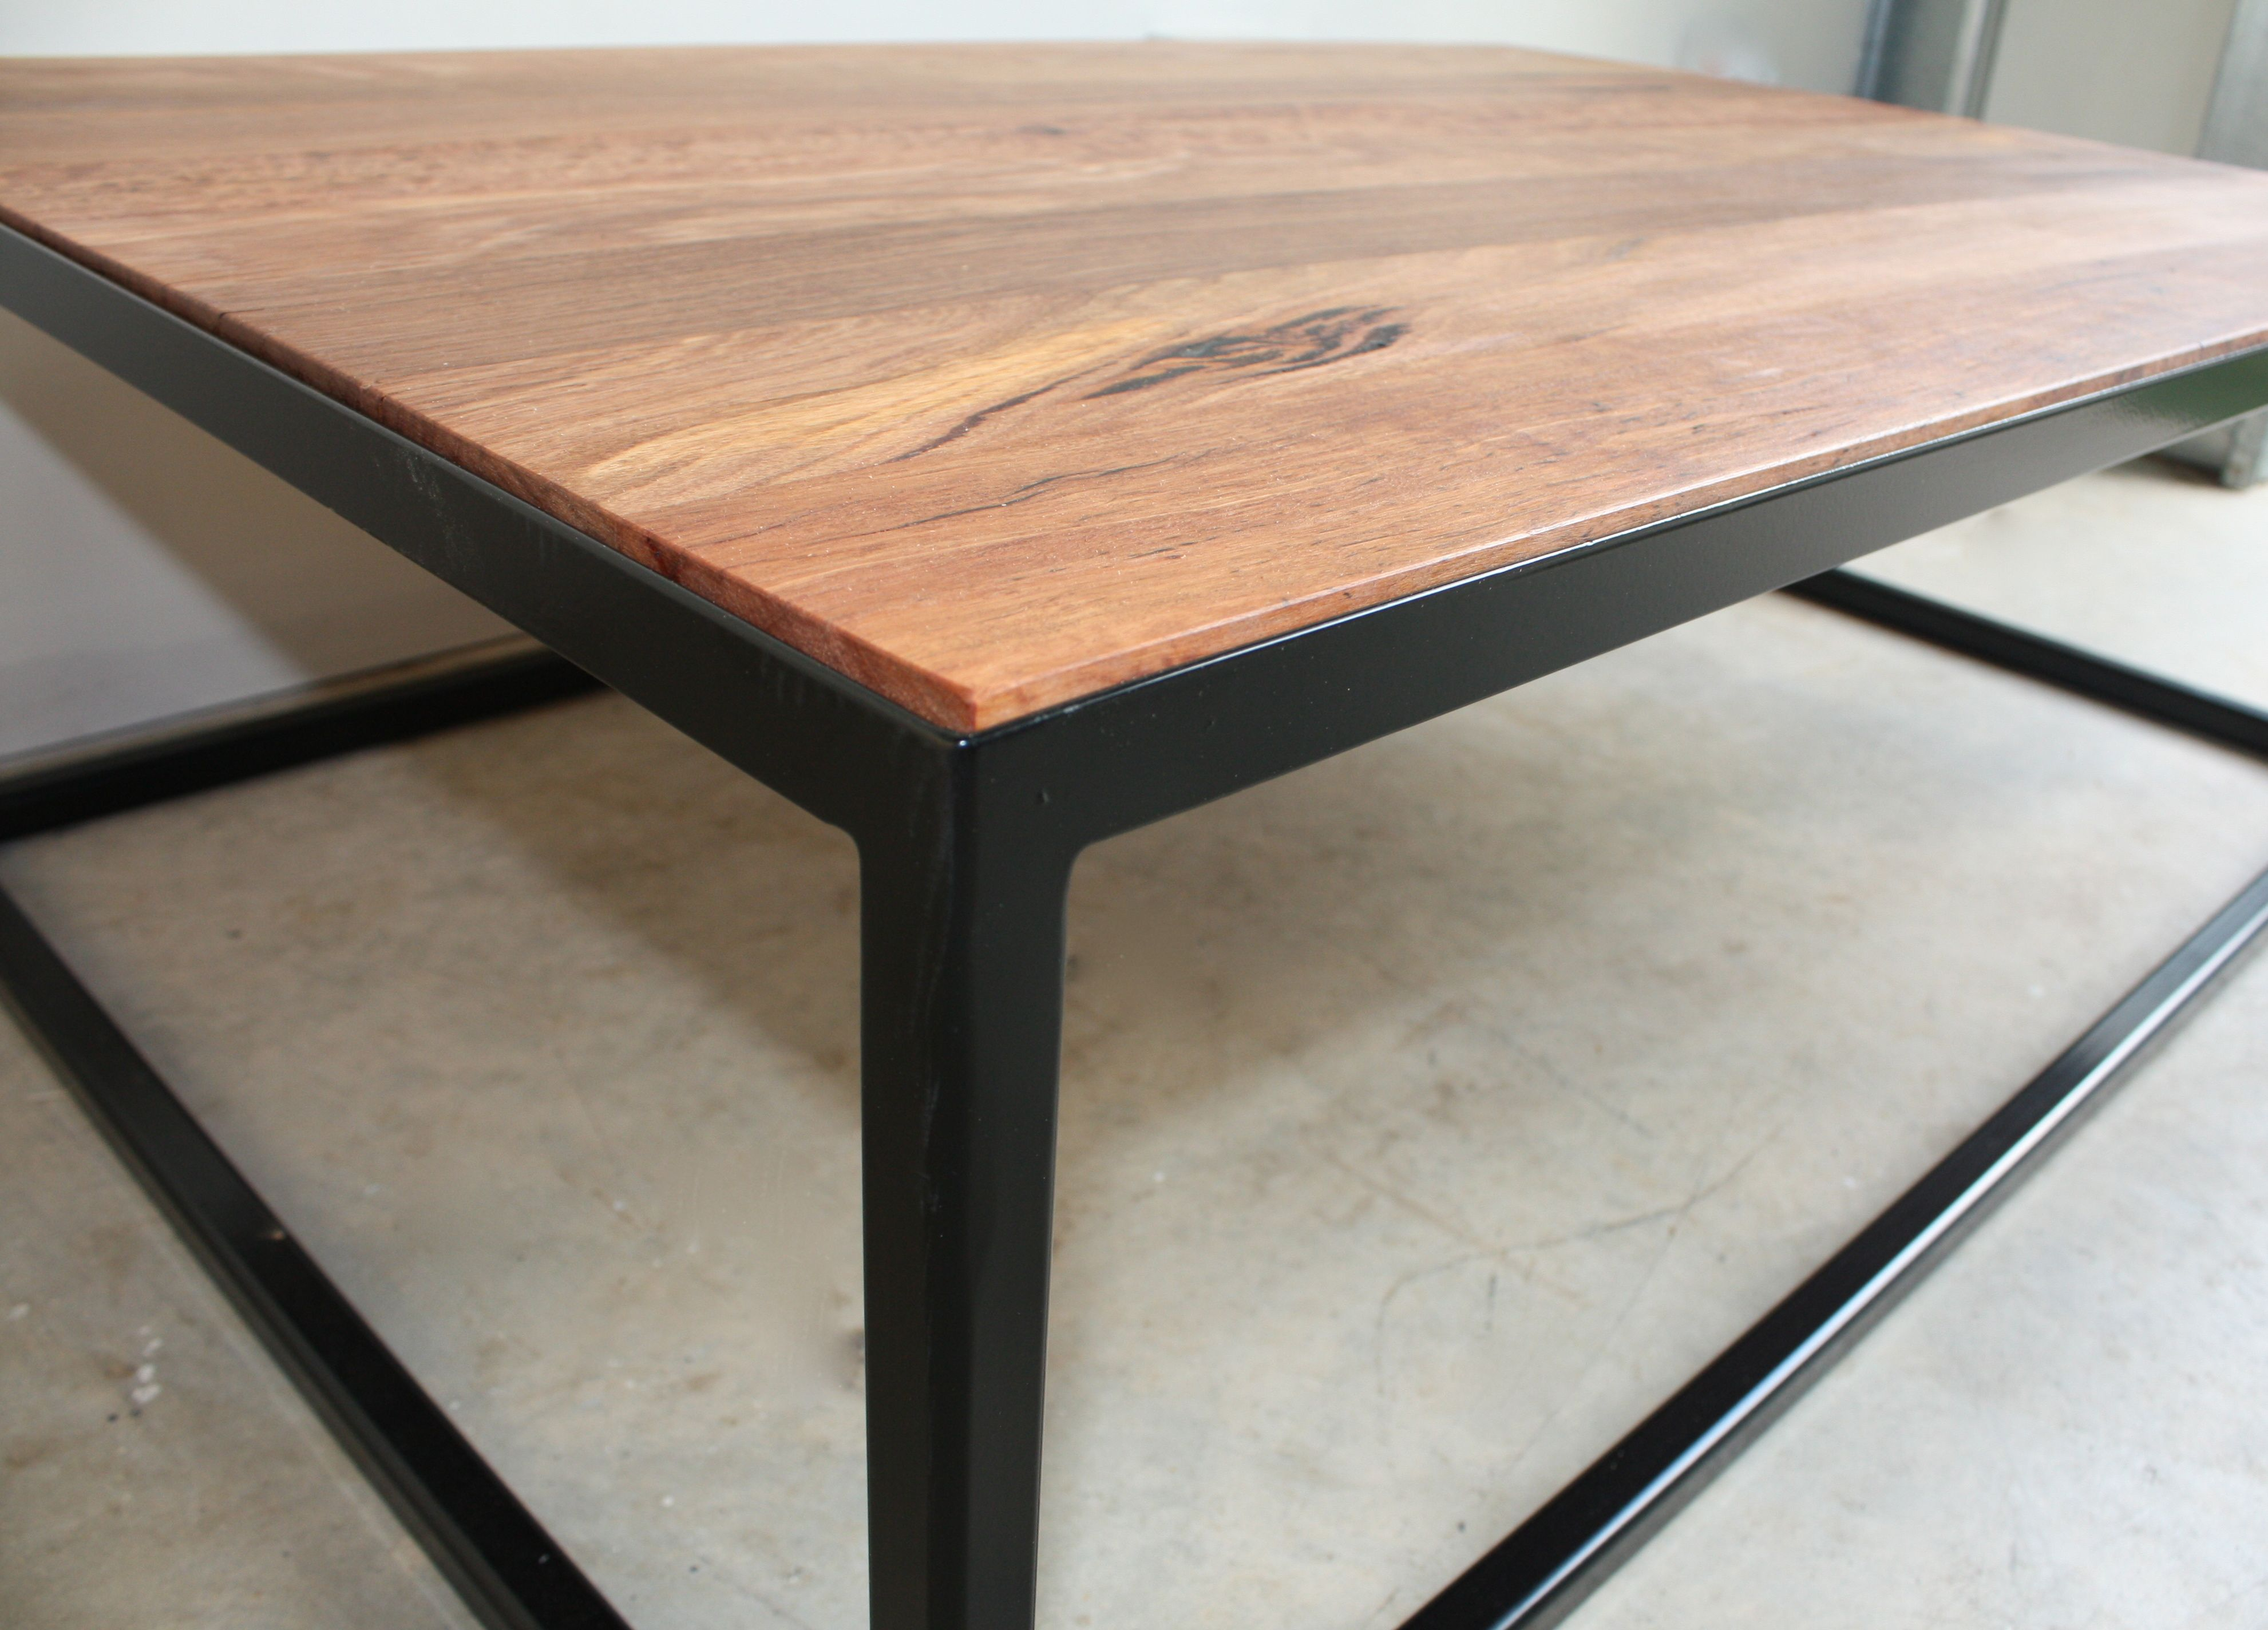 The James Coffee Table By Woodspoke Recycled Messmate Top Recessed In To Black Steel Powder Coated Coffee Table Metal Frame Custom Made Furniture Coffee Table